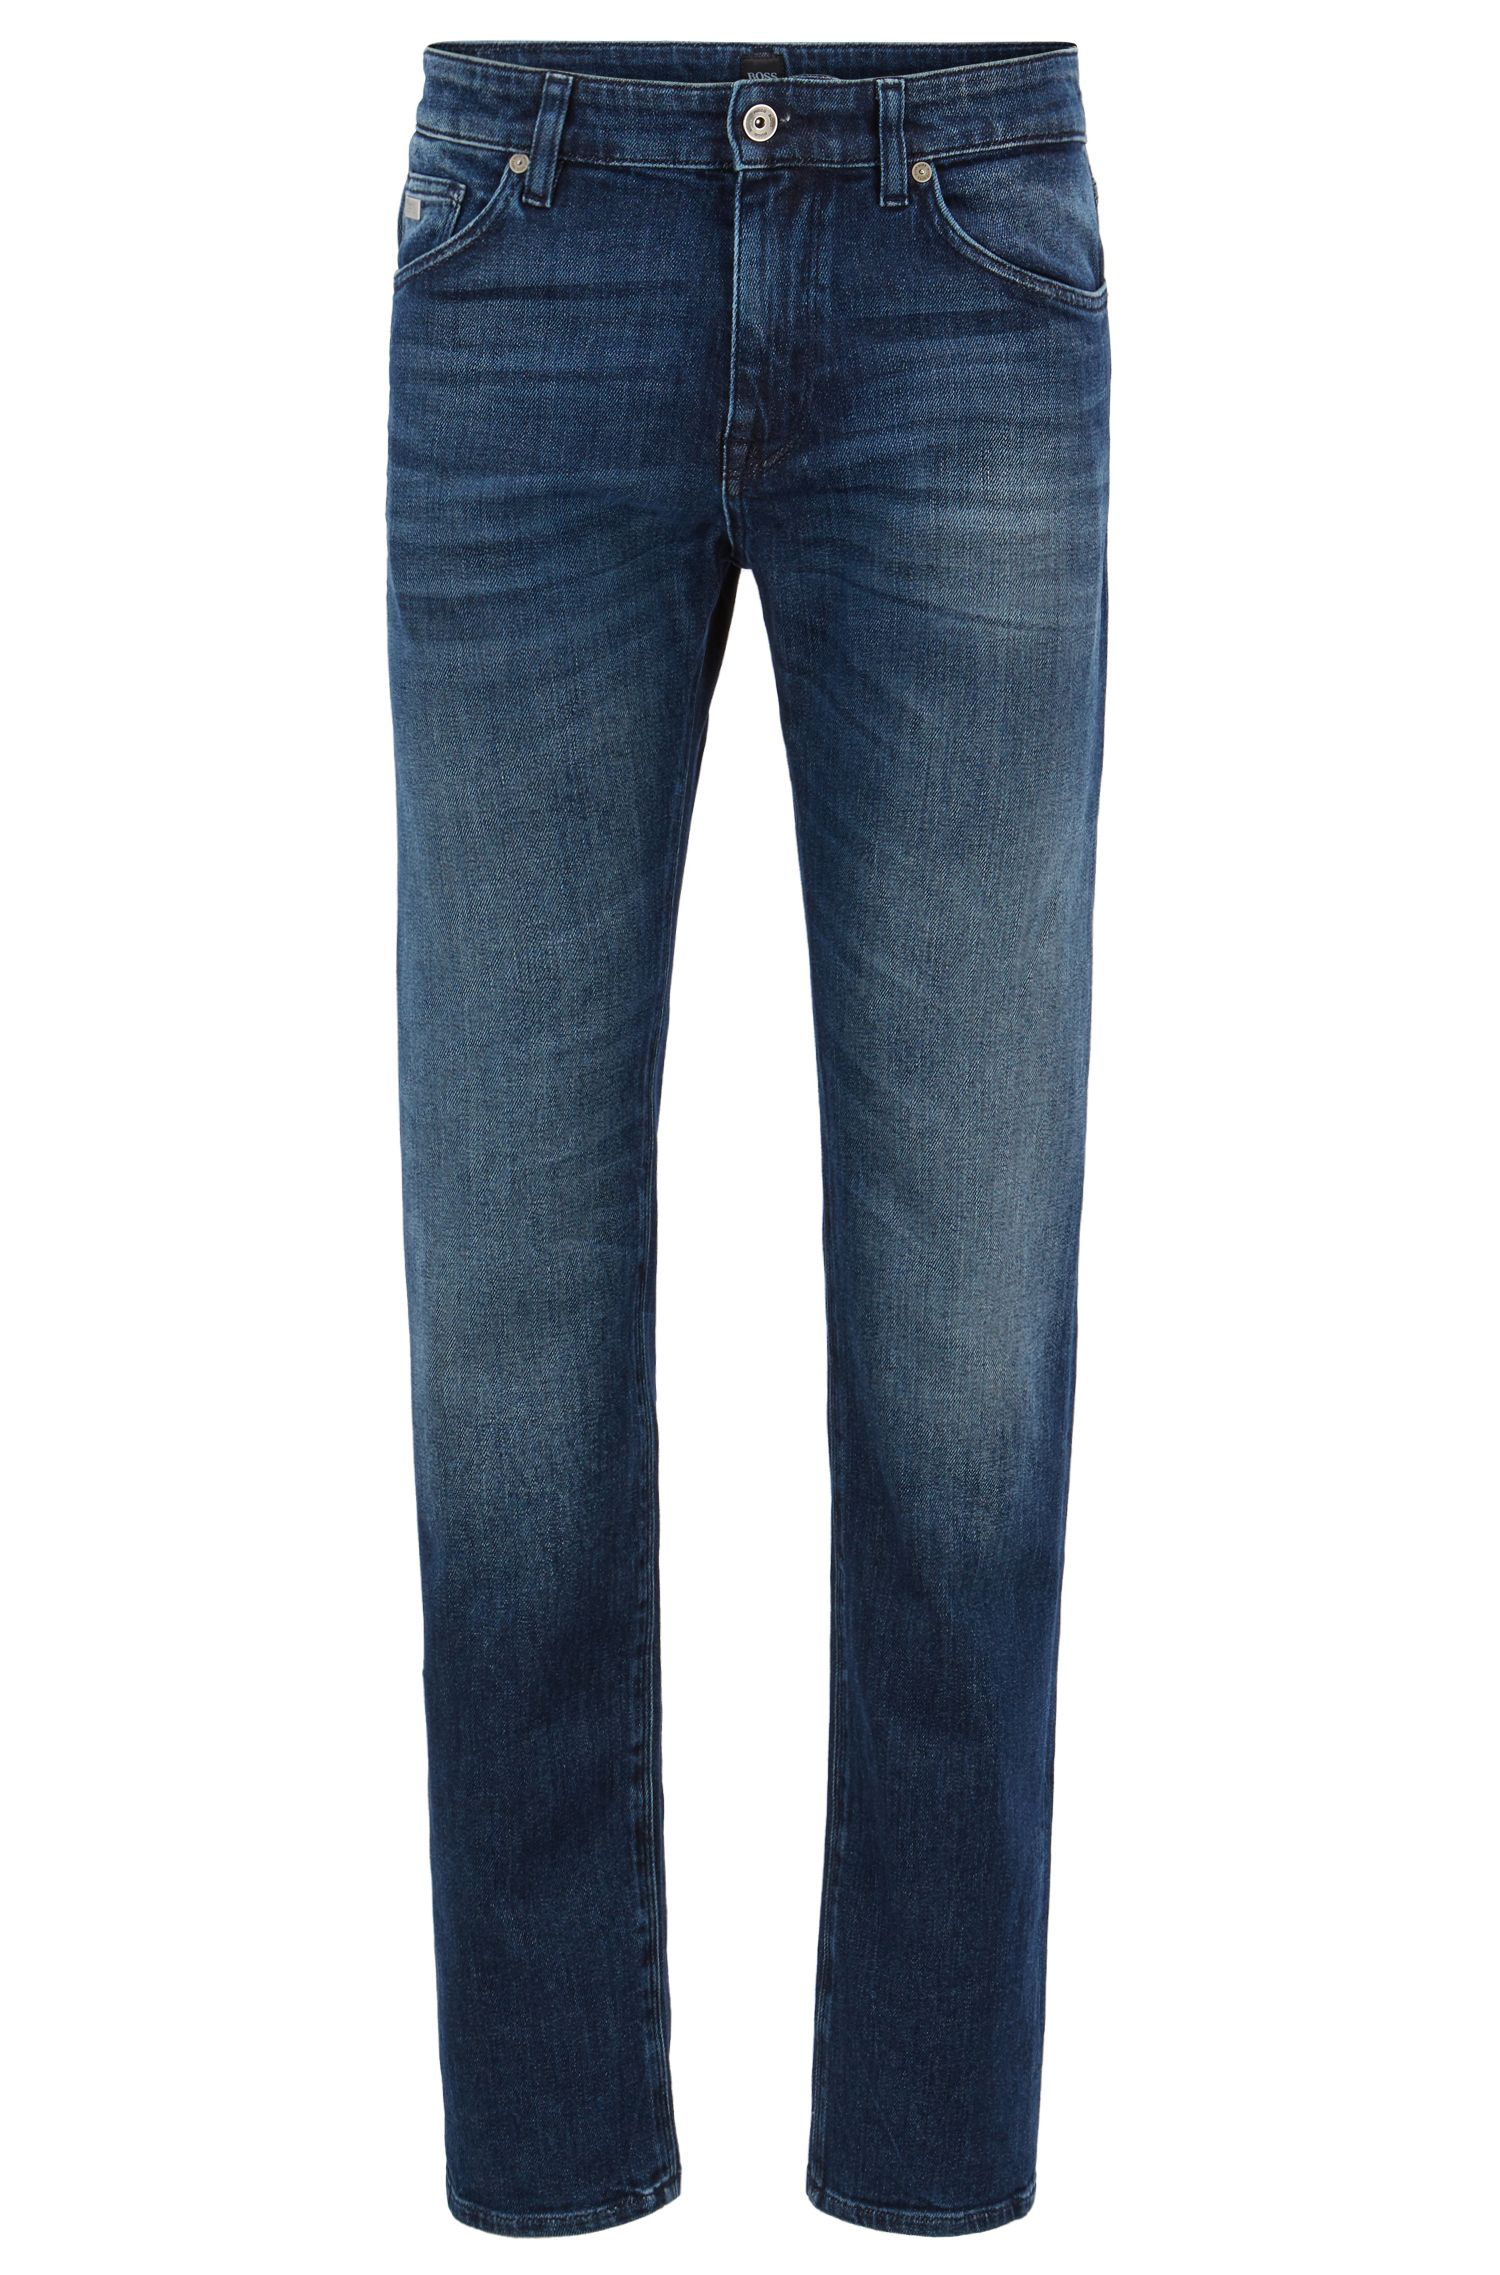 11 oz Stretch Cotton Jean, Regular Fit | Maine